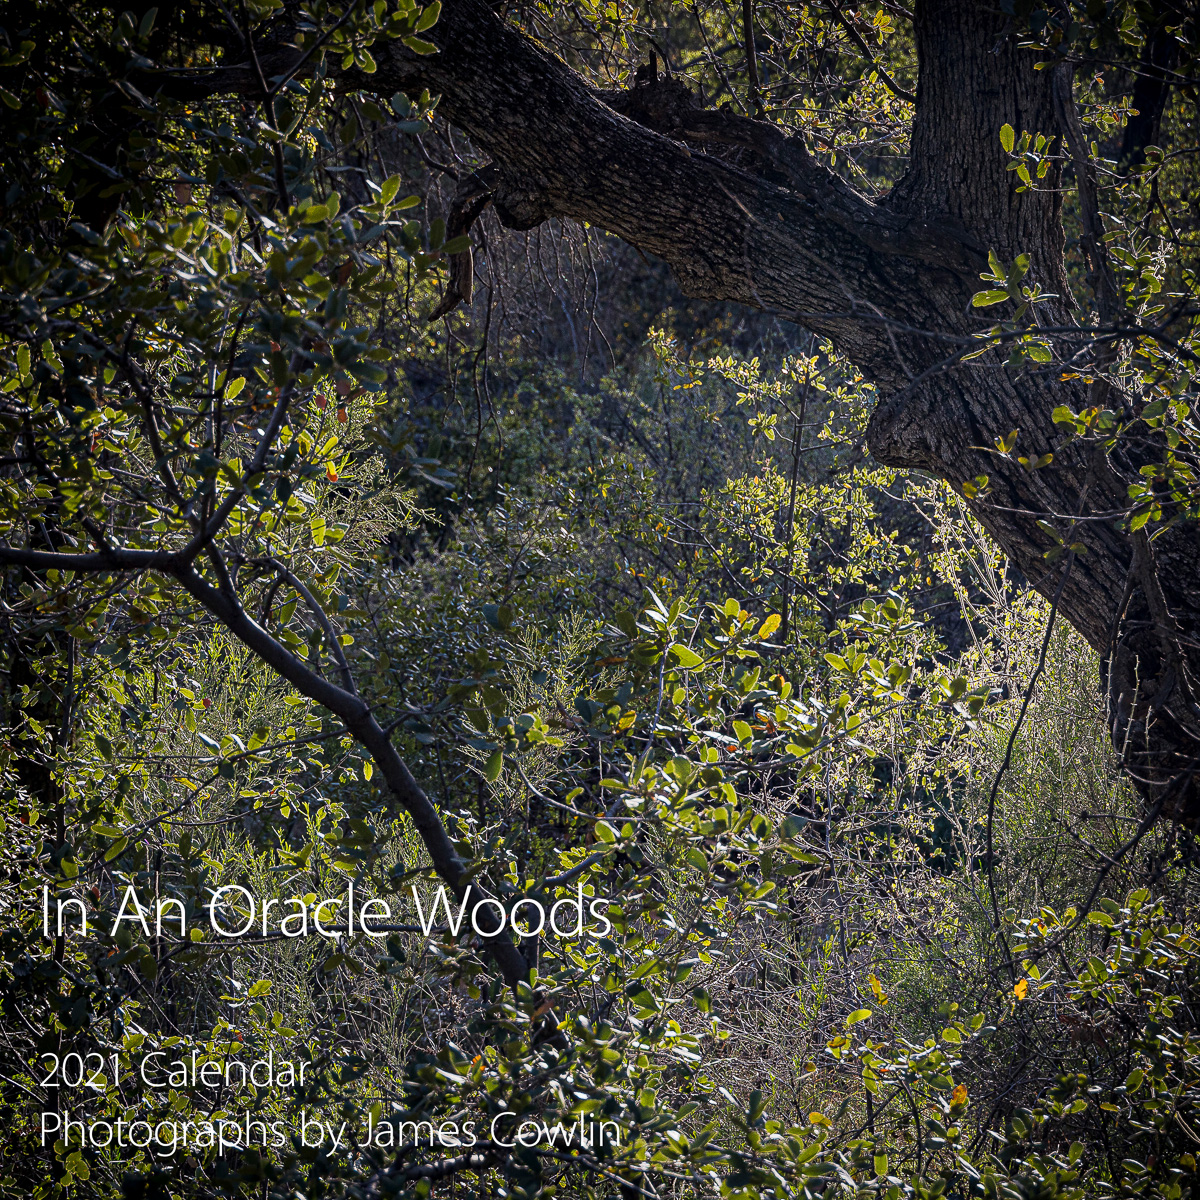 In An Oracle Woods 2021 Calendar-Cover-James Cowlin Photographs